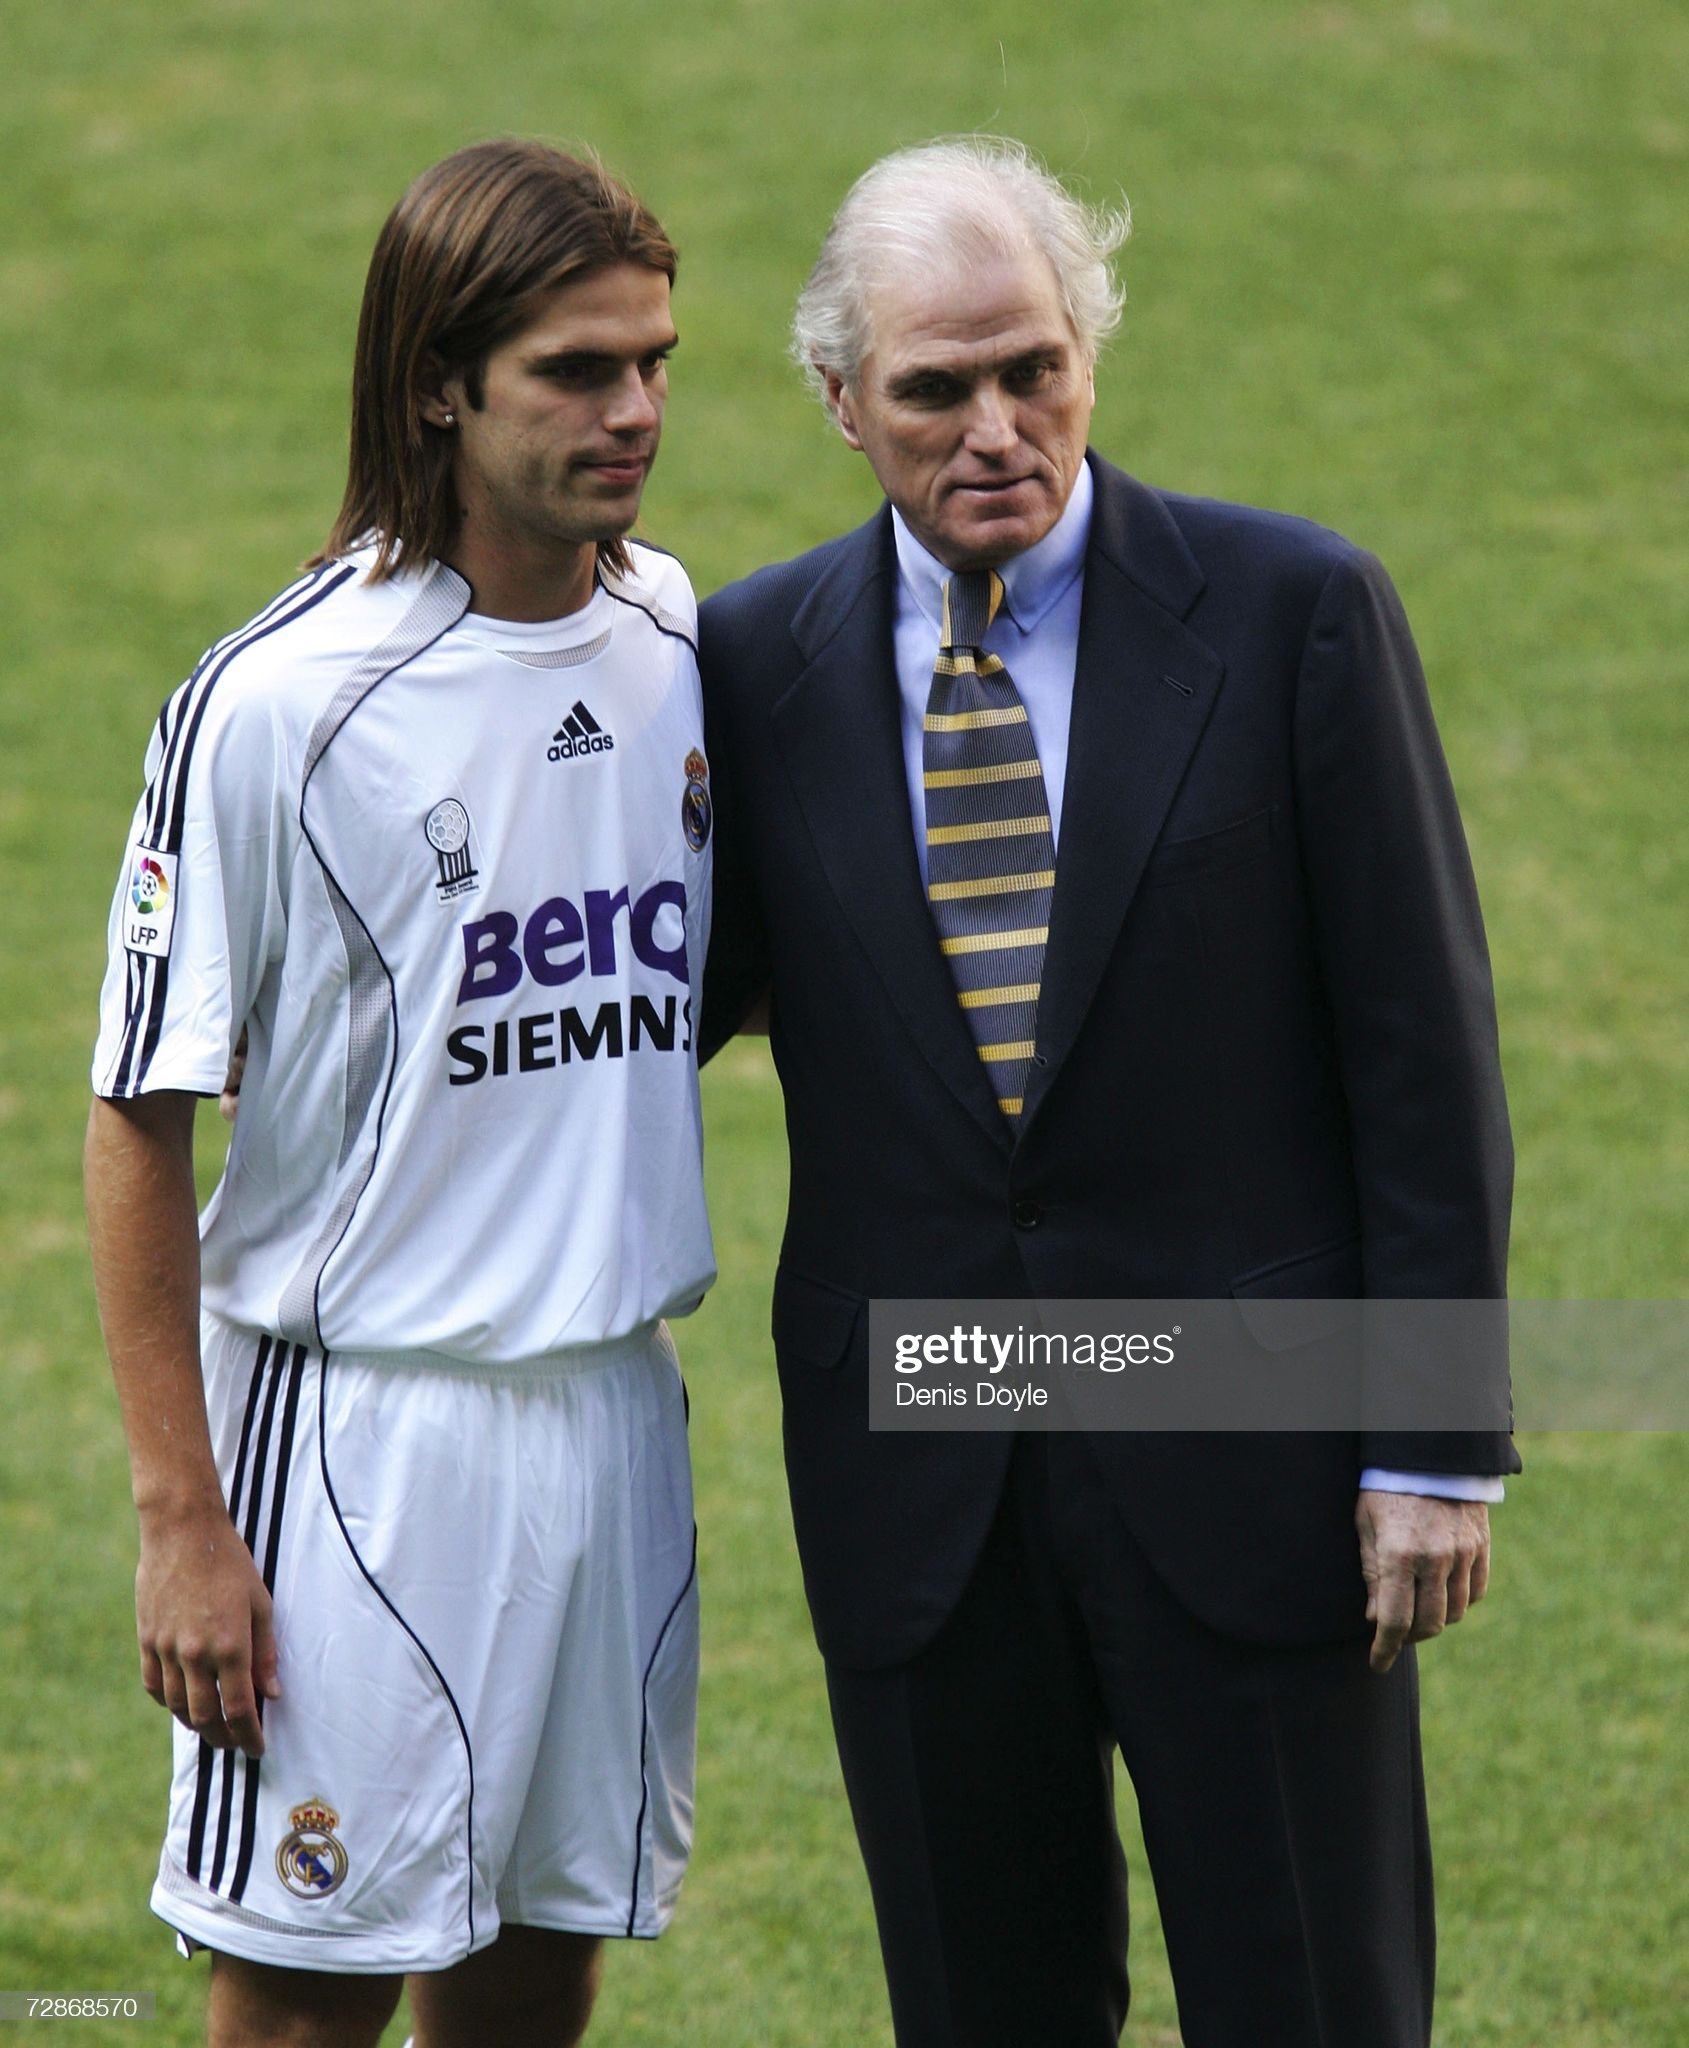 ¿Cuánto mide Gabriel Heinze? Fernando-gago-of-argentina-is-accompanied-with-real-president-ramon-picture-id72868570?s=2048x2048